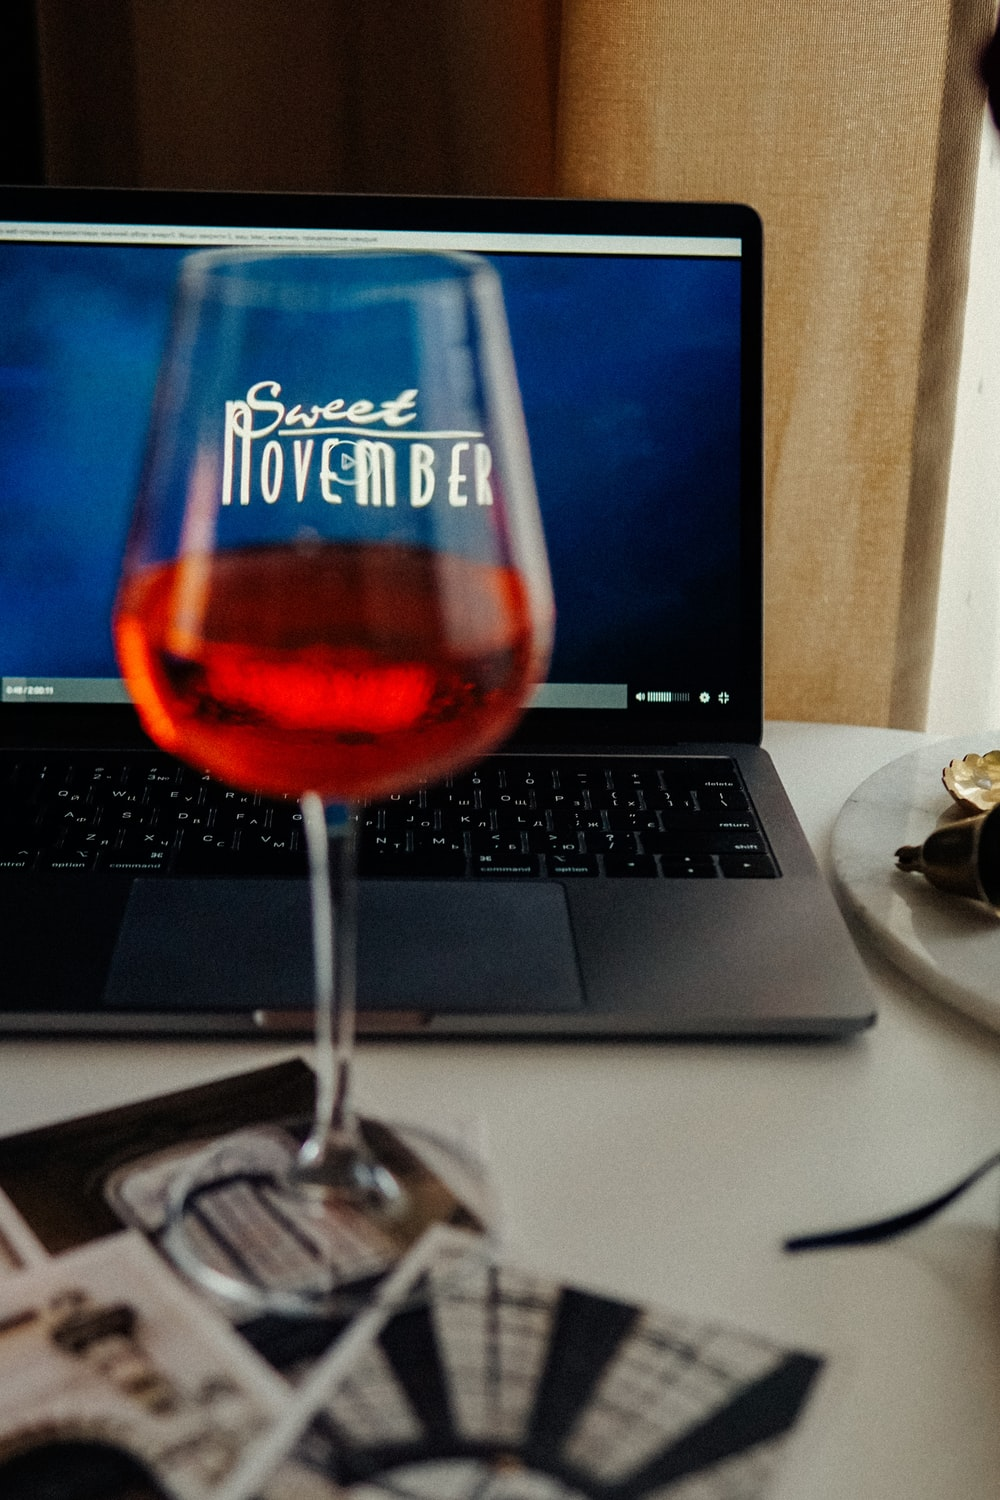 clear wine glass beside black and silver laptop computer